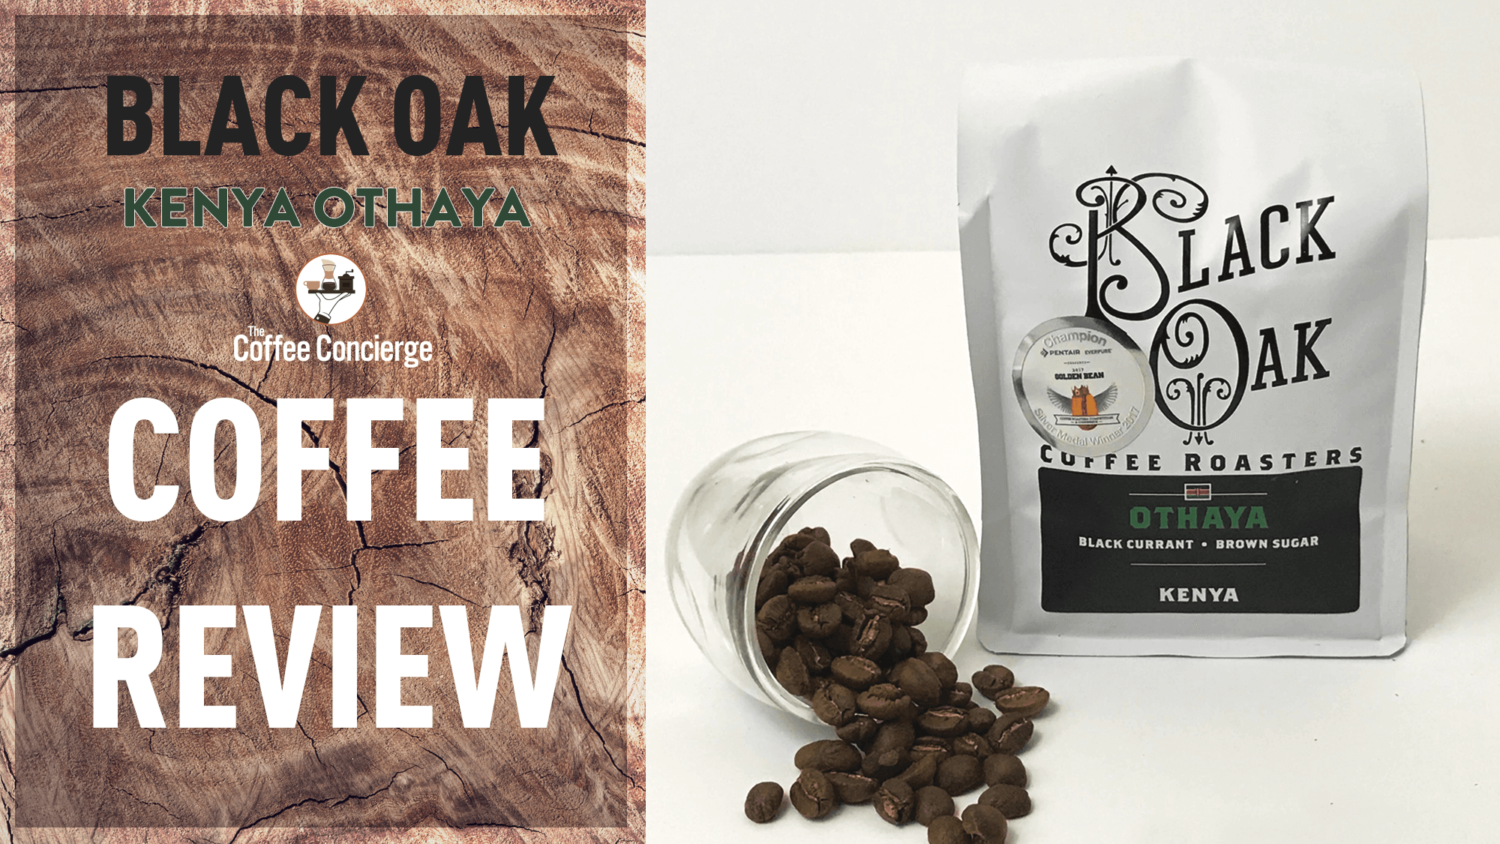 Black Oak Coffee Roasters Kenya Othaya Review